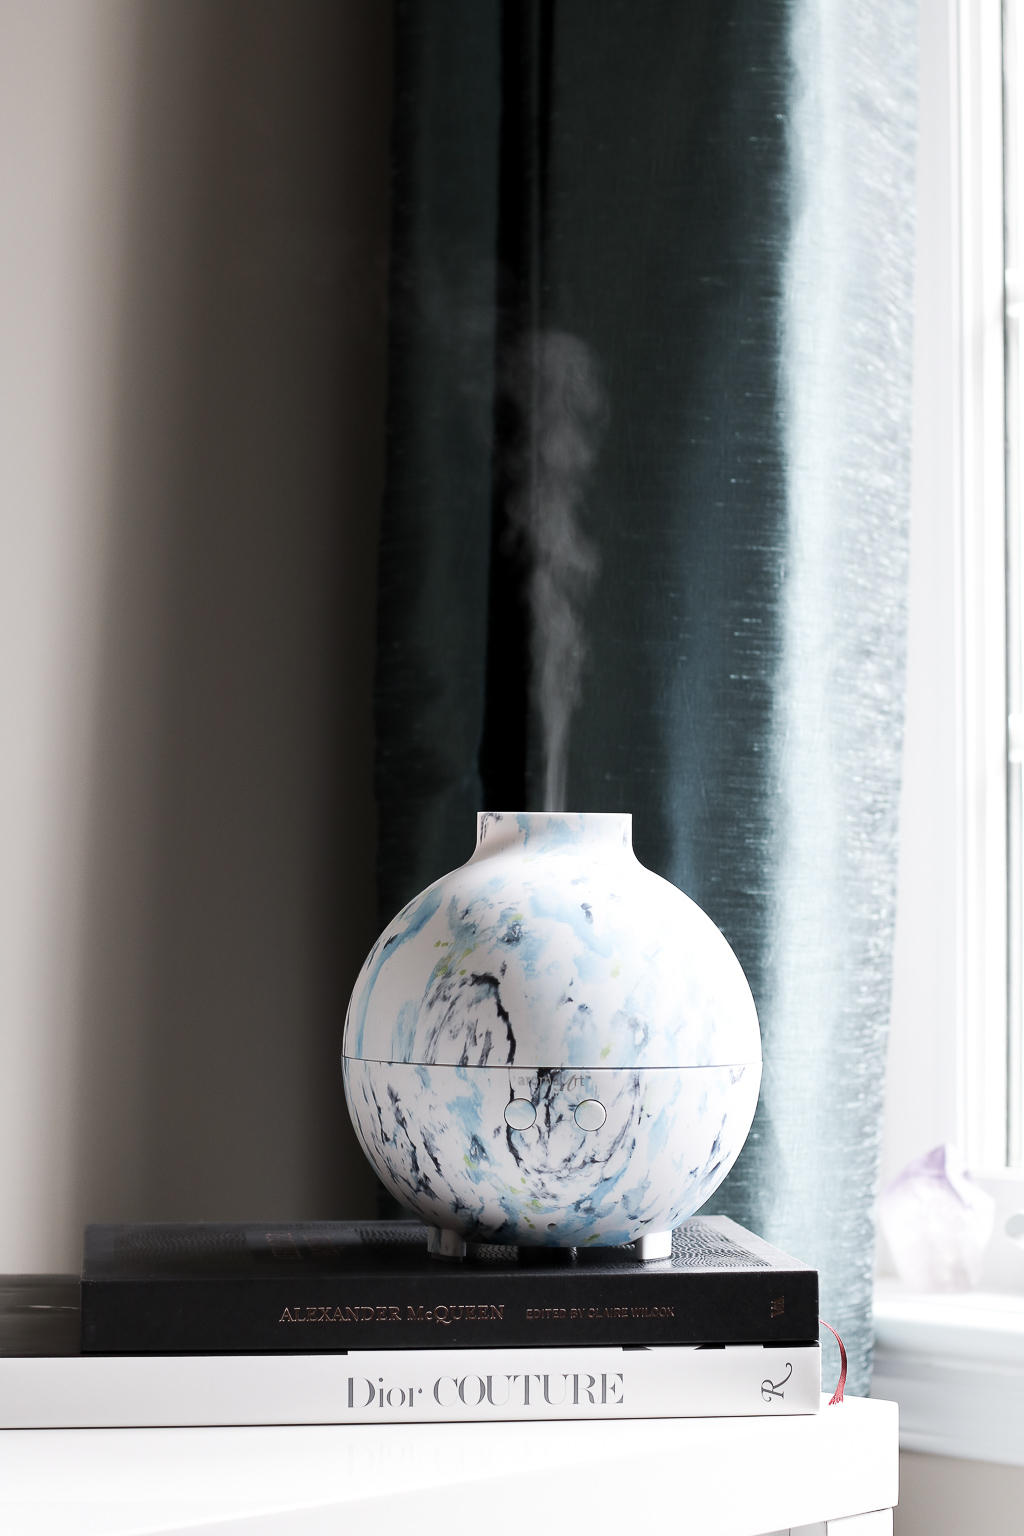 Saje Wellness' AromaArt Diffuser is a beautiful way to add a relaxing atmosphere to your home!